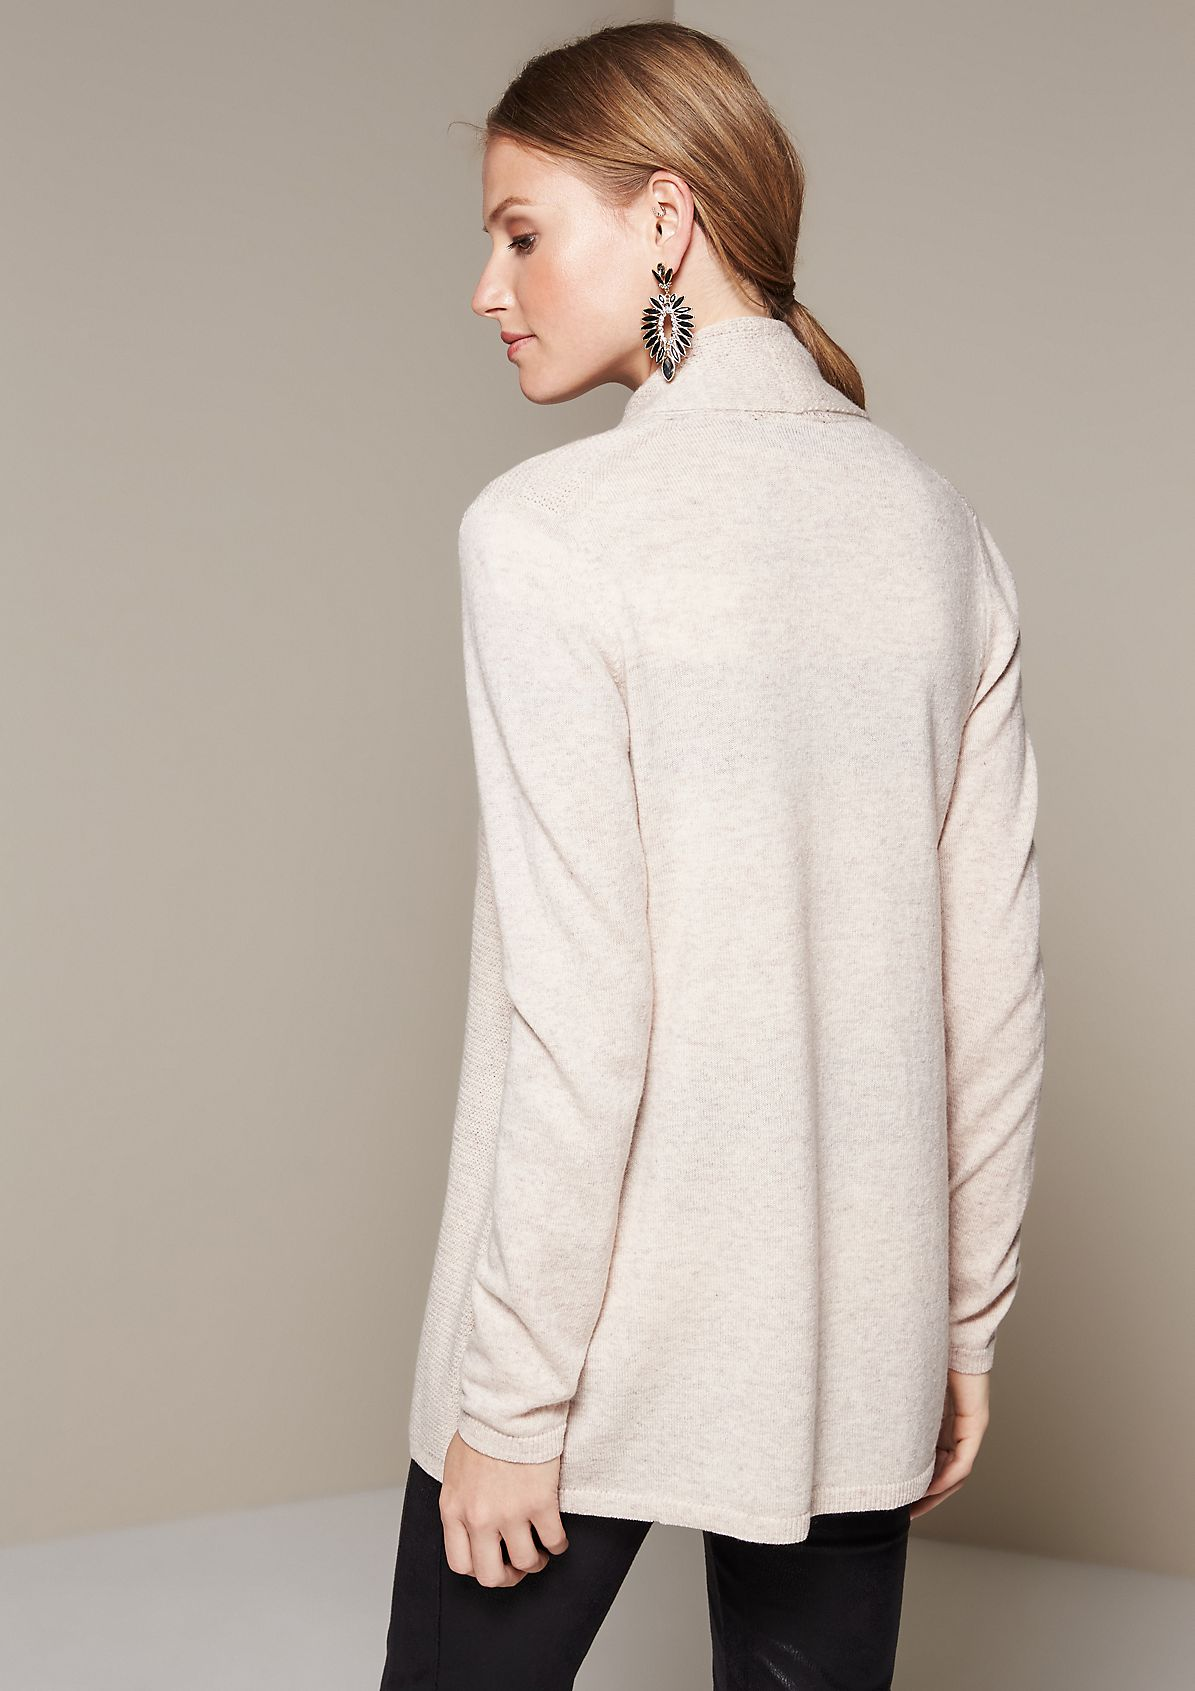 Cosy long cardigan in a mix of patterns from s.Oliver